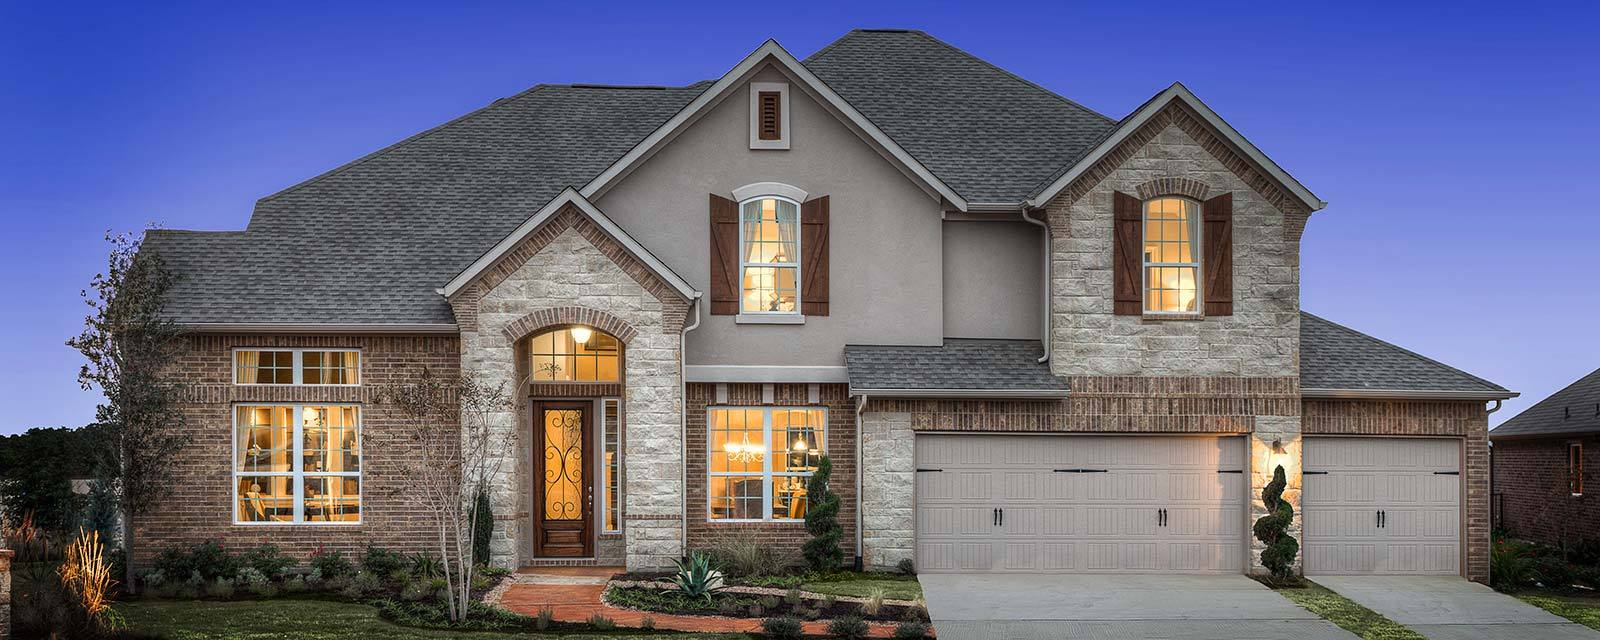 Single Family for Sale at Lakes Edge - Bethany 2500 Ashley Worth Blvd Bee Cave, Texas 78738 United States